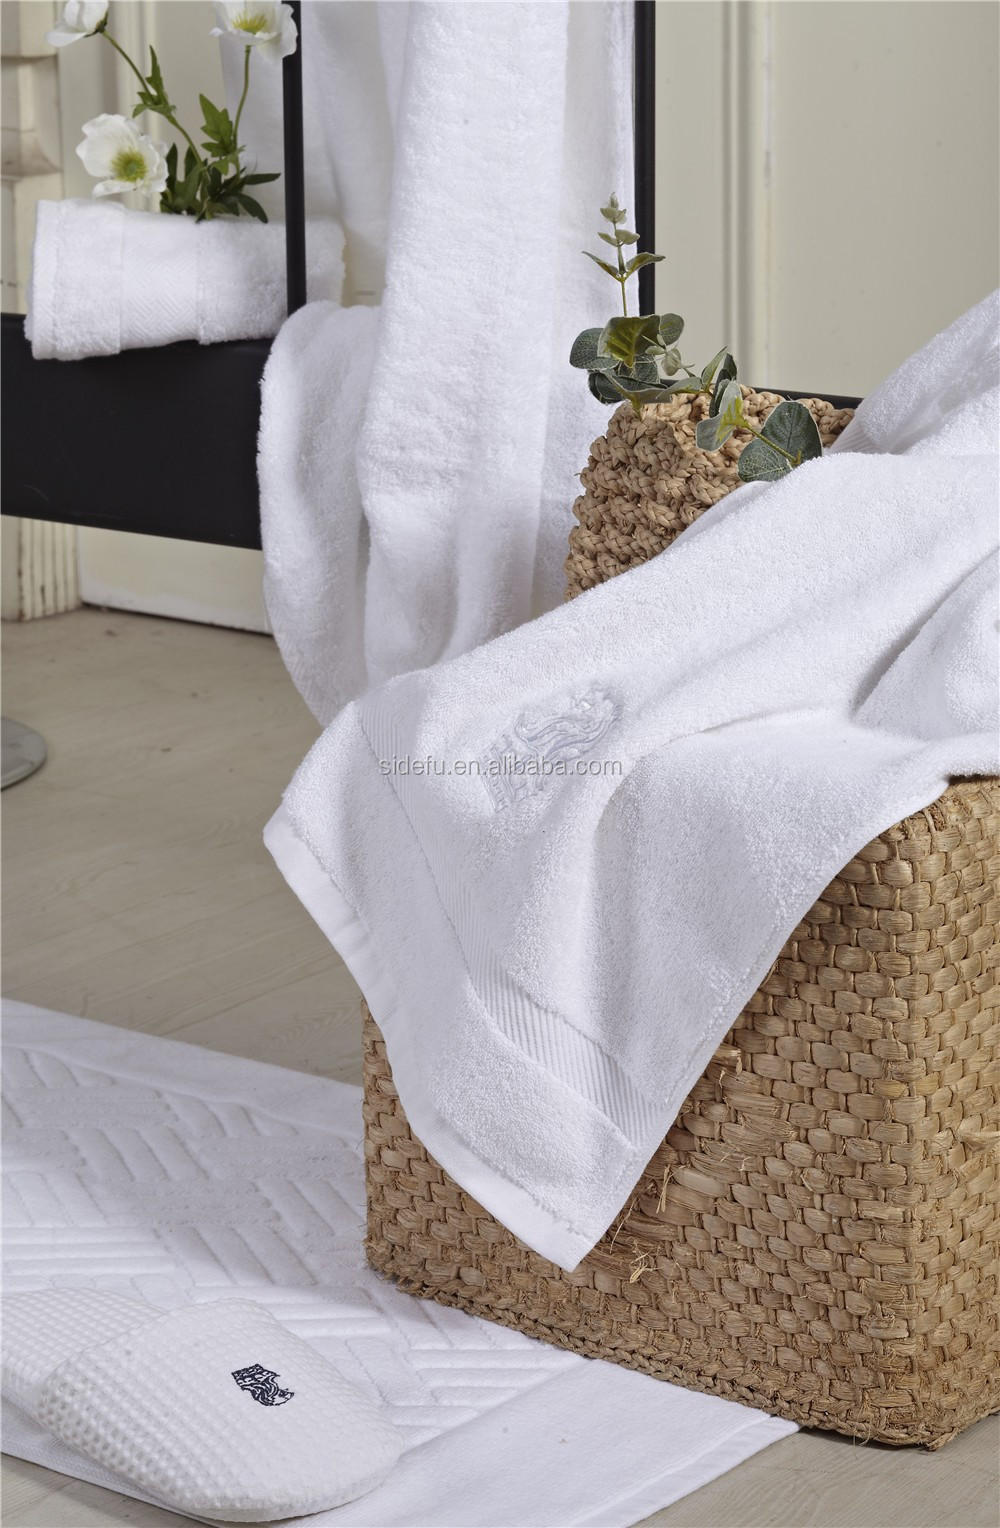 Customized Hotel supplies white jacquard cotton bath towels manufacture